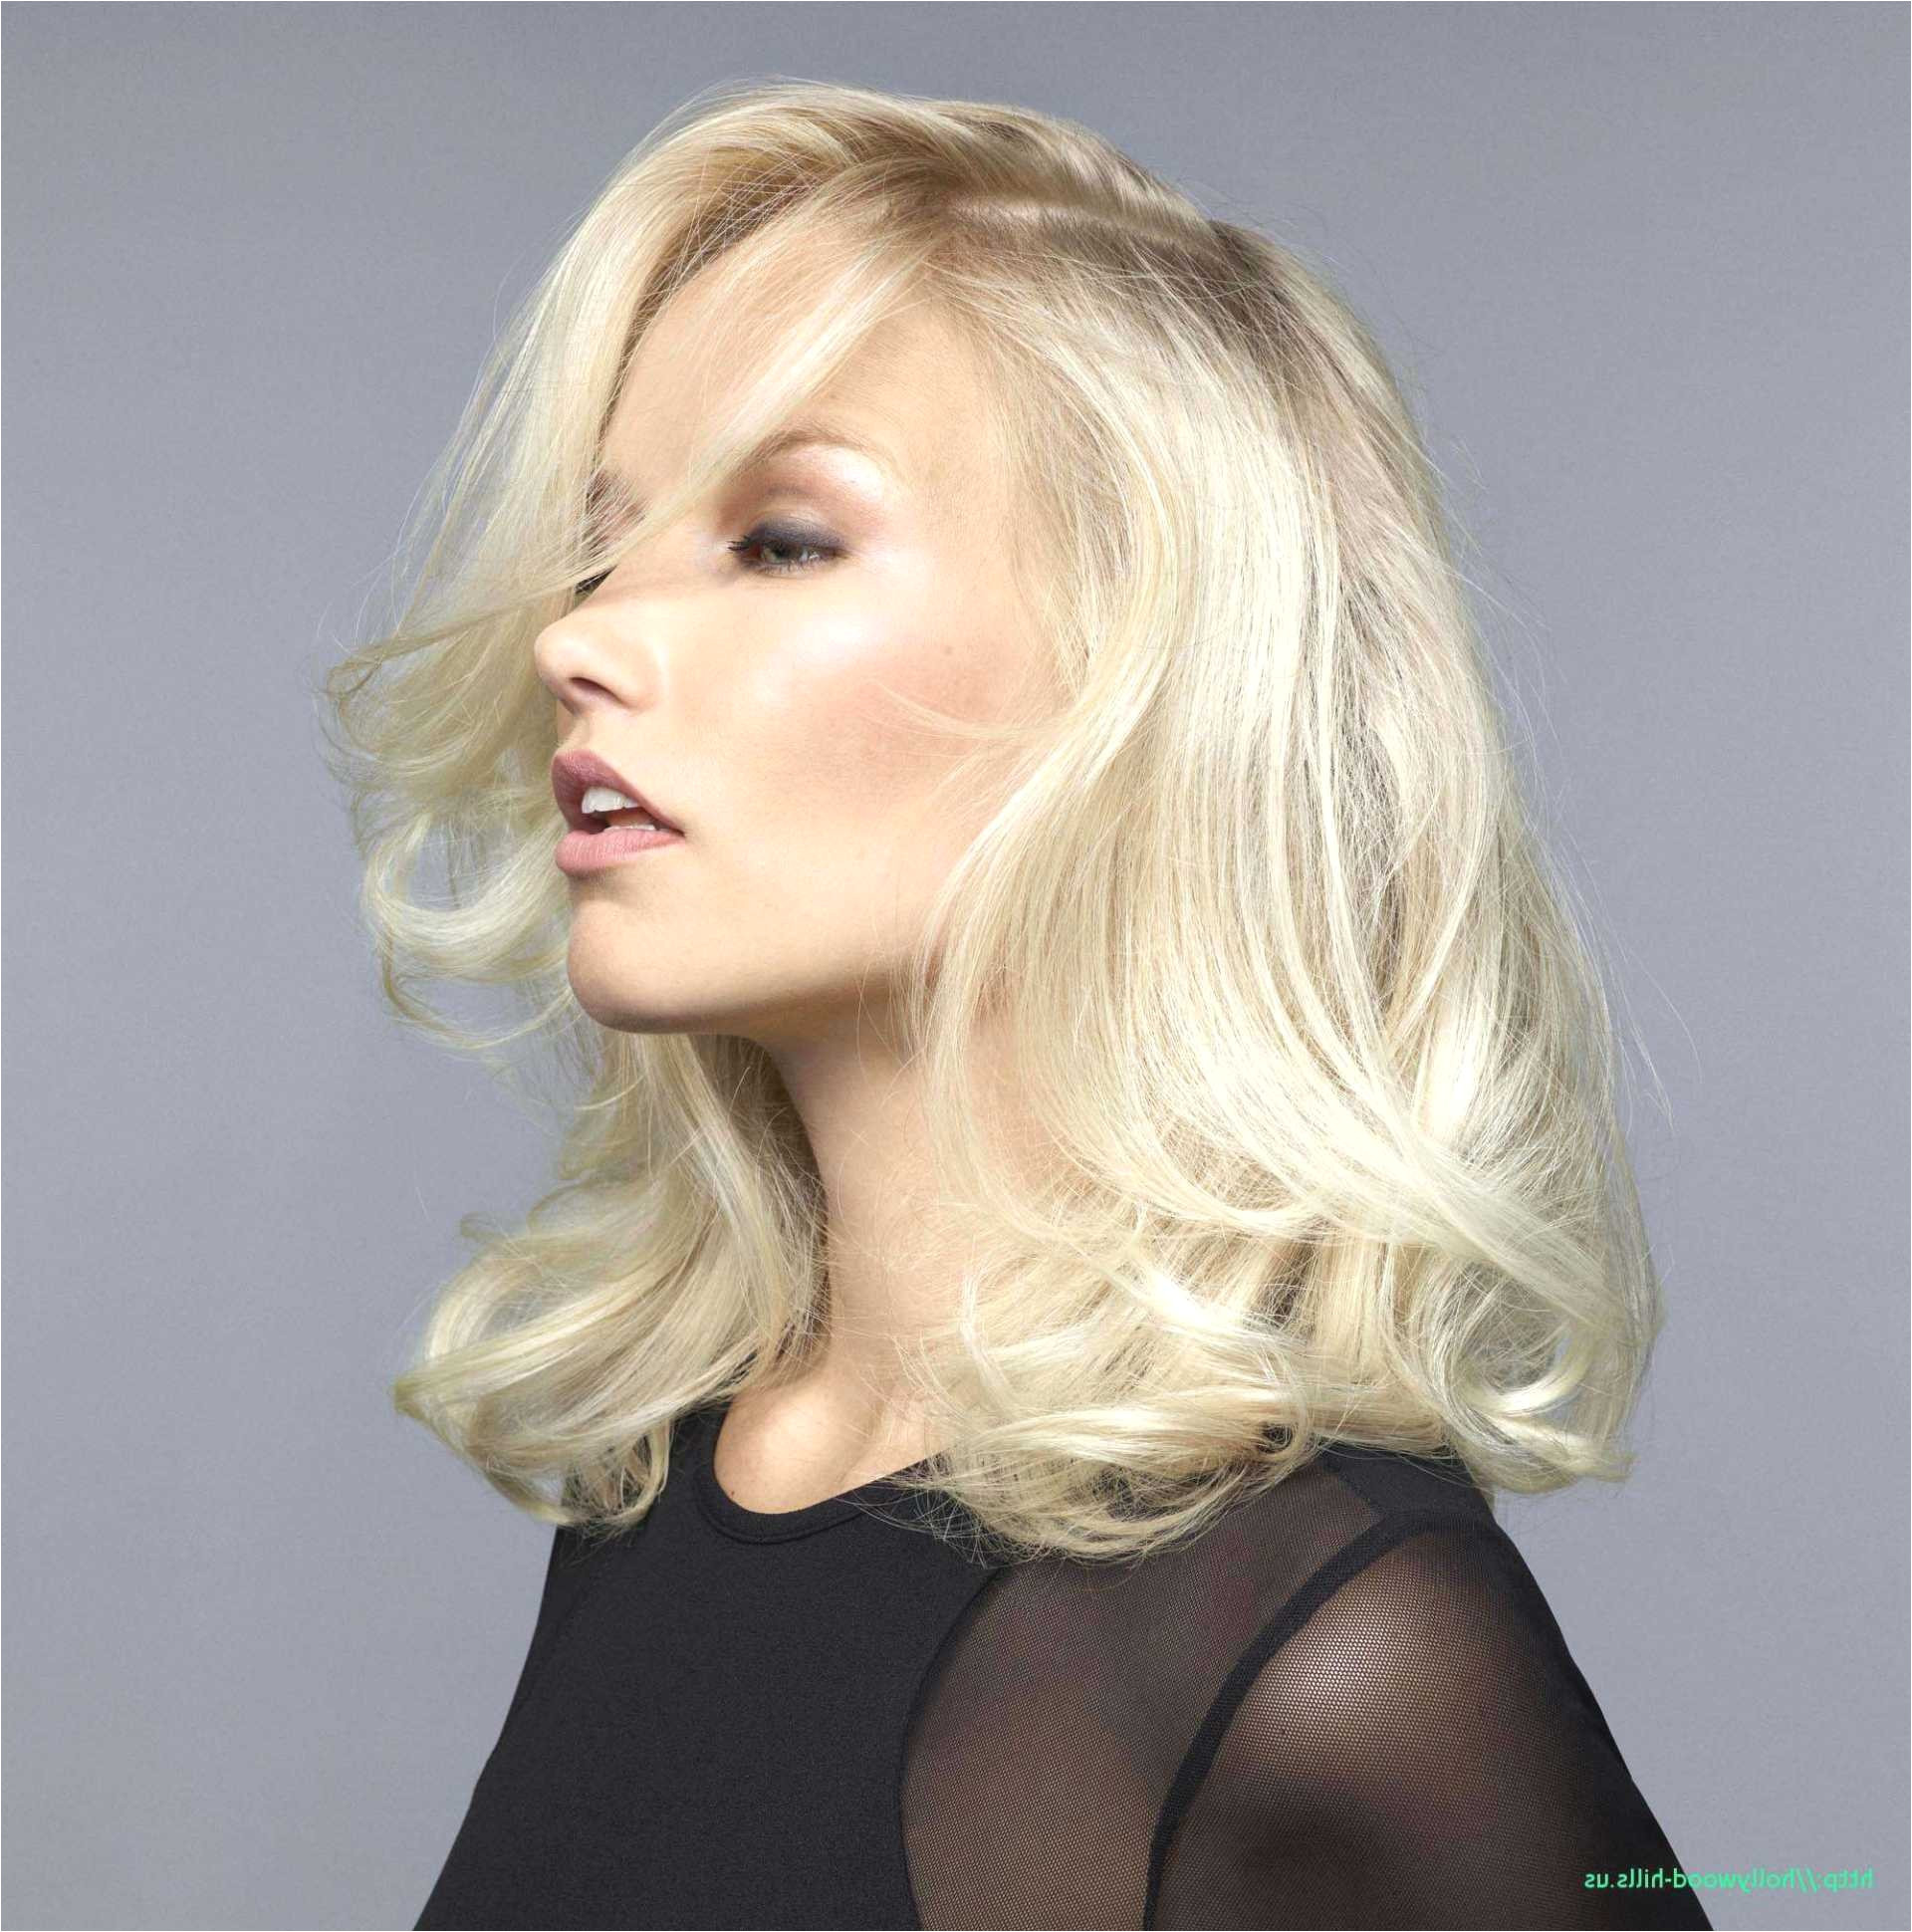 Elegant 1940s Hairstyles Messy Hairstyles for Girls Inspirational La S Long Hairstyles